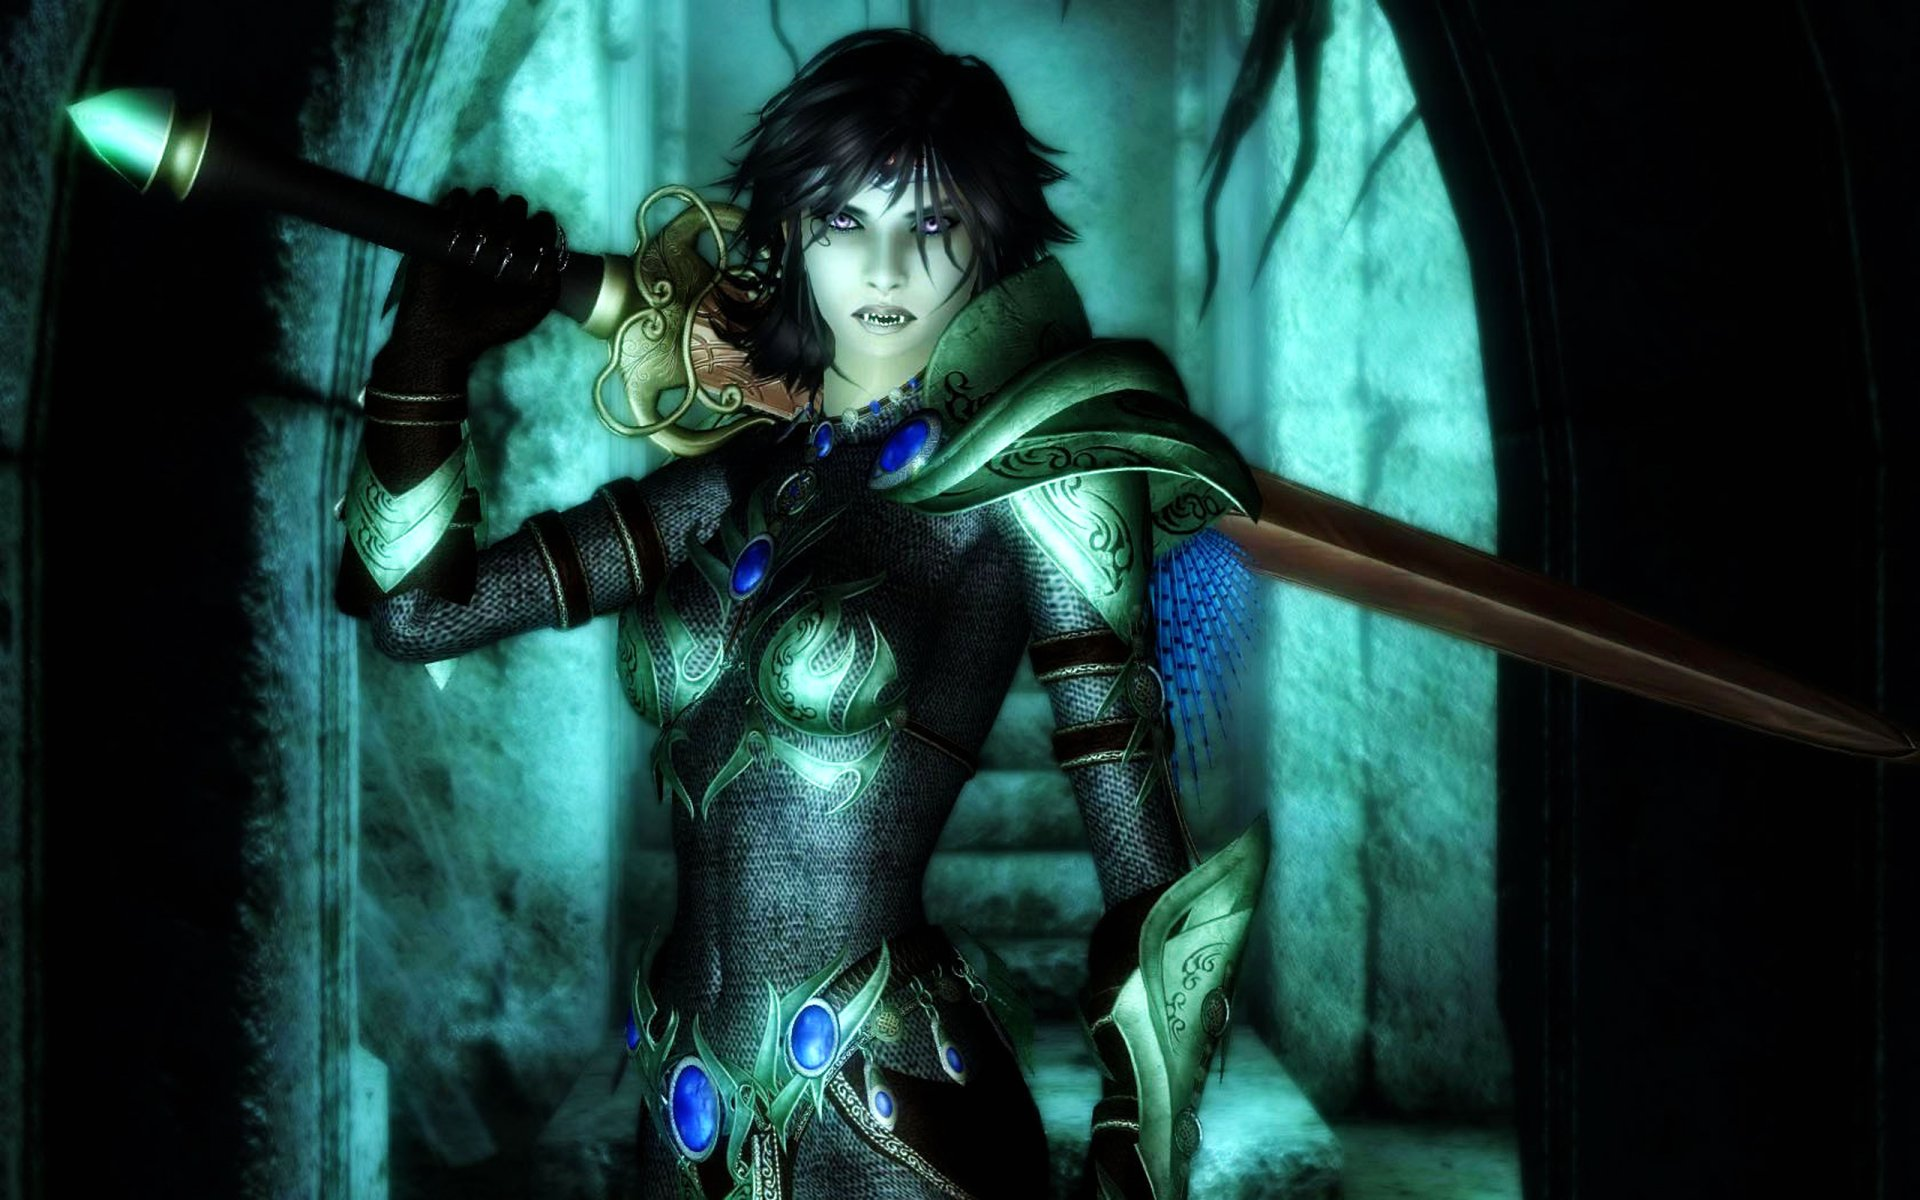 Video Game - The Elder Scrolls IV: Oblivion  Armor Vampire Wallpaper